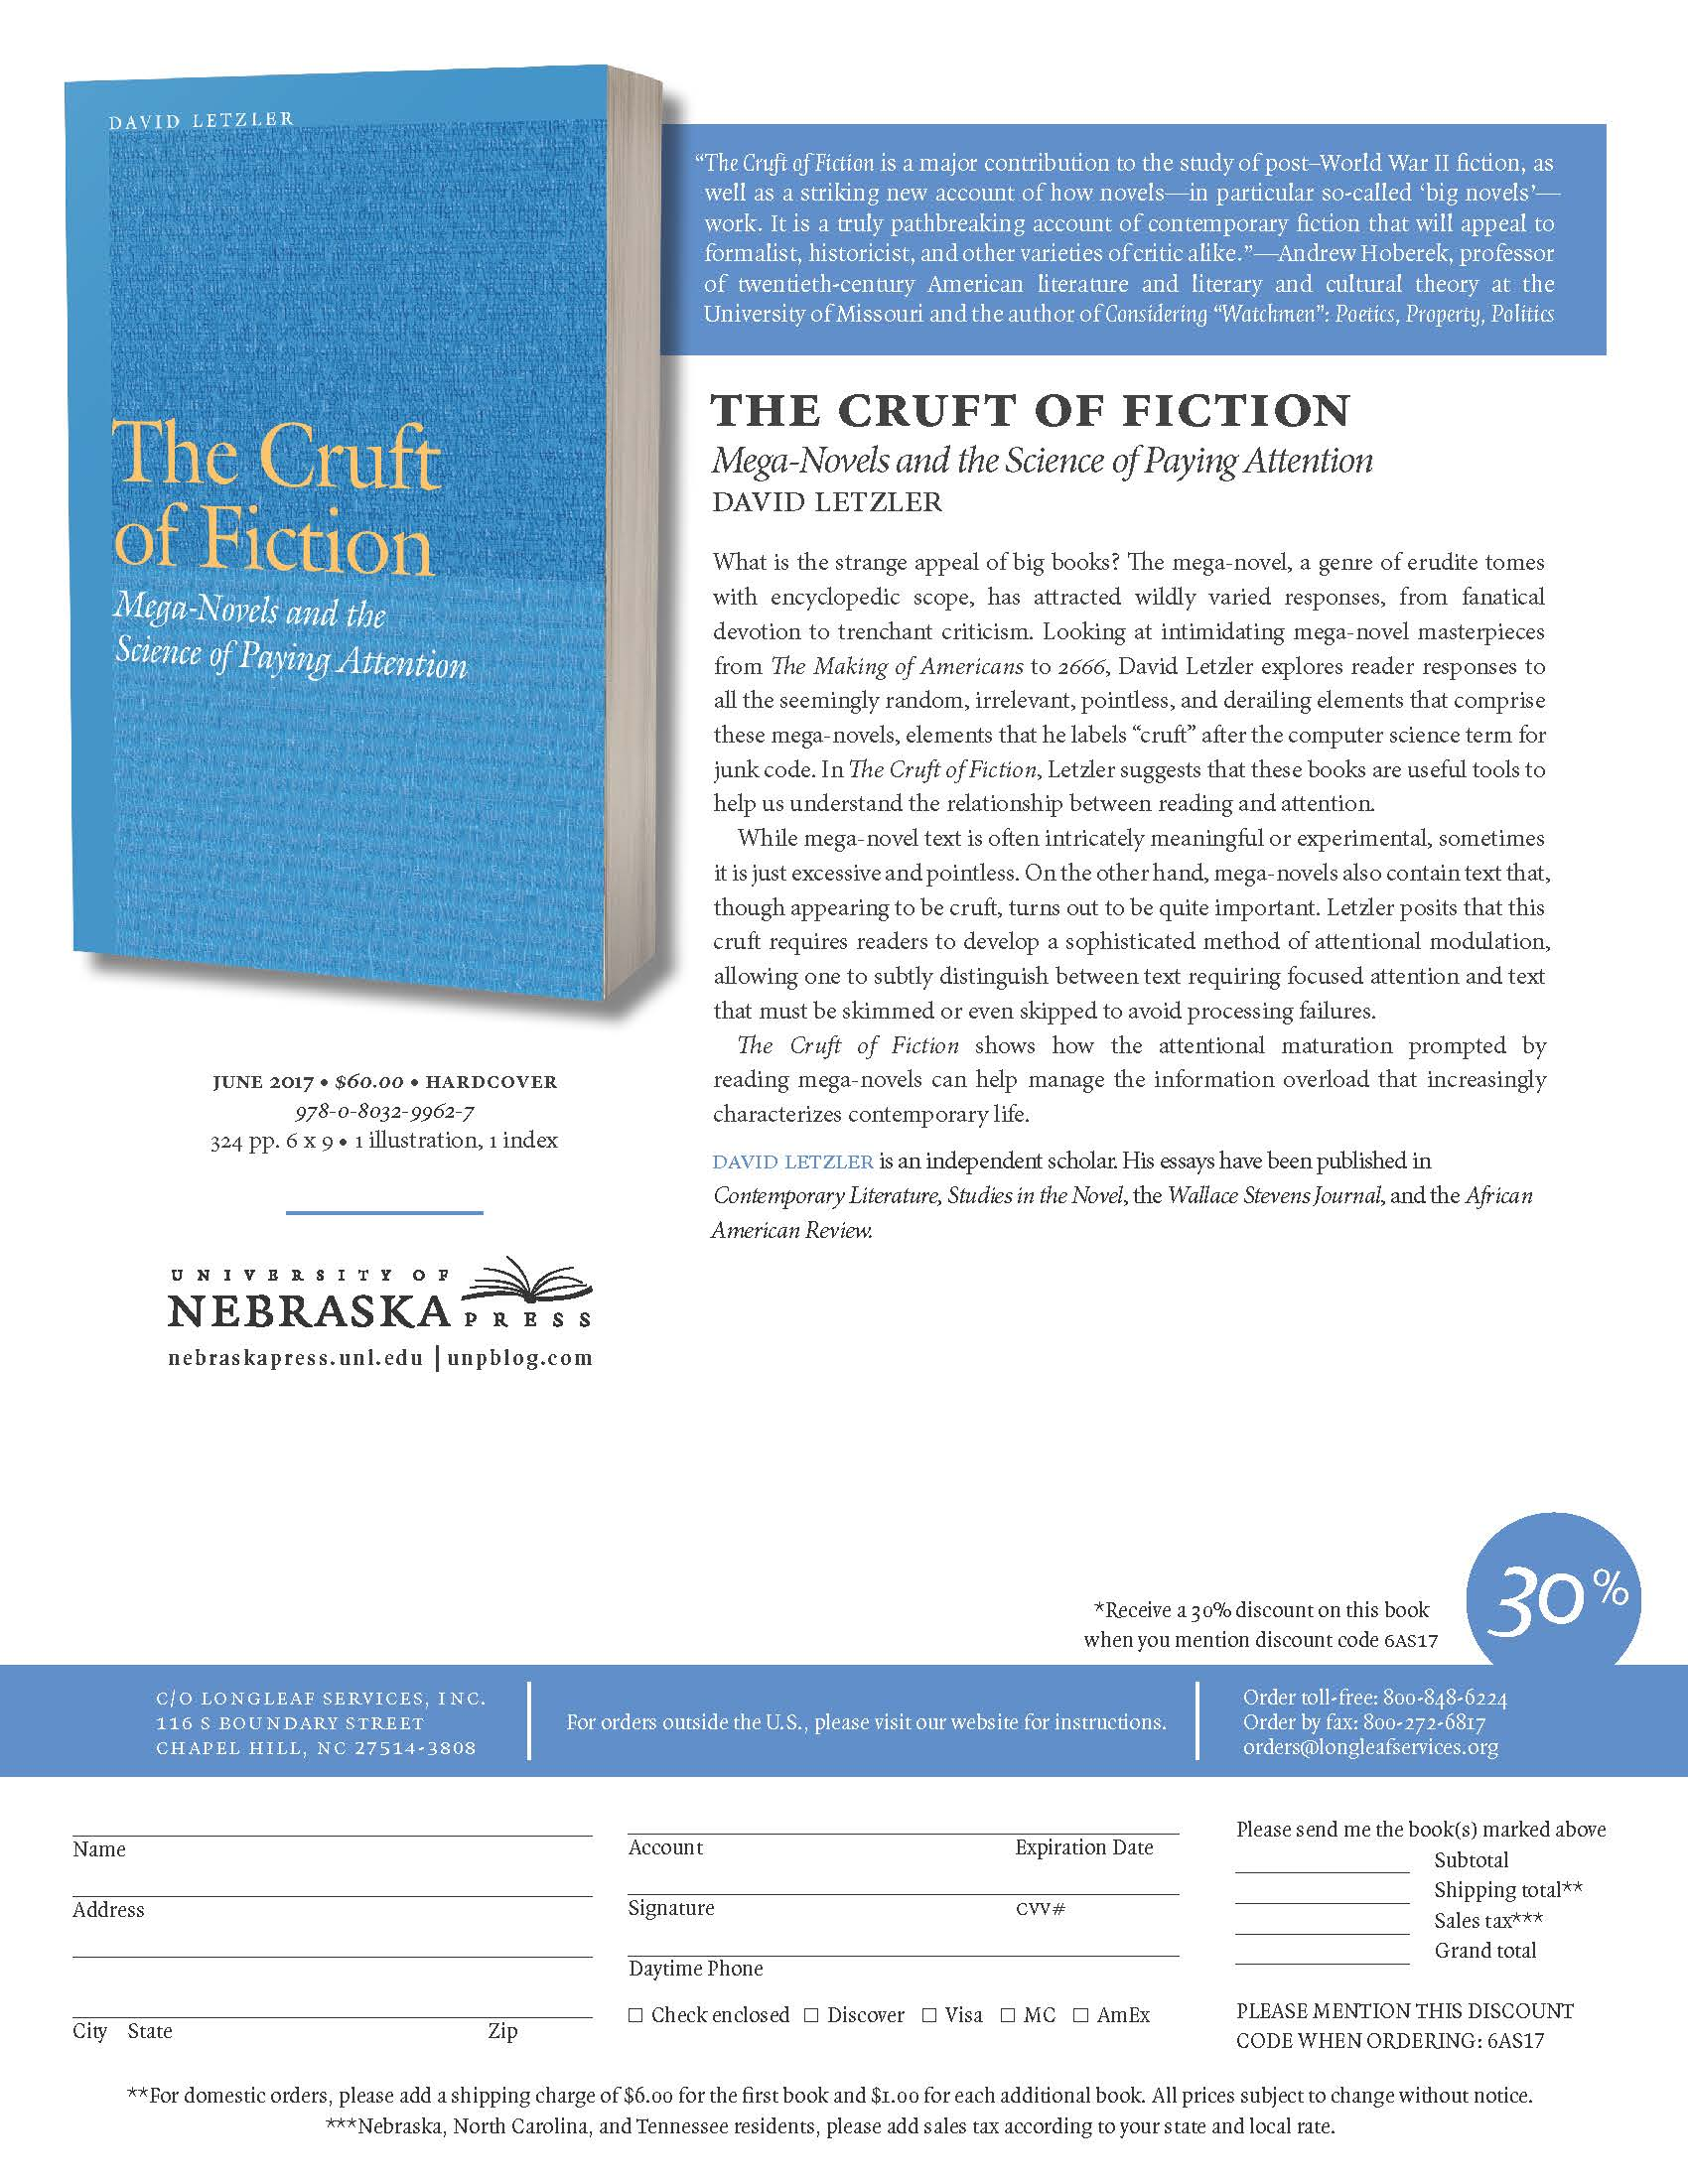 David Letzler. The Cruft of Fiction: Mega-Novels and the Science of Paying Attention. Nebraska University Press, June 2017.